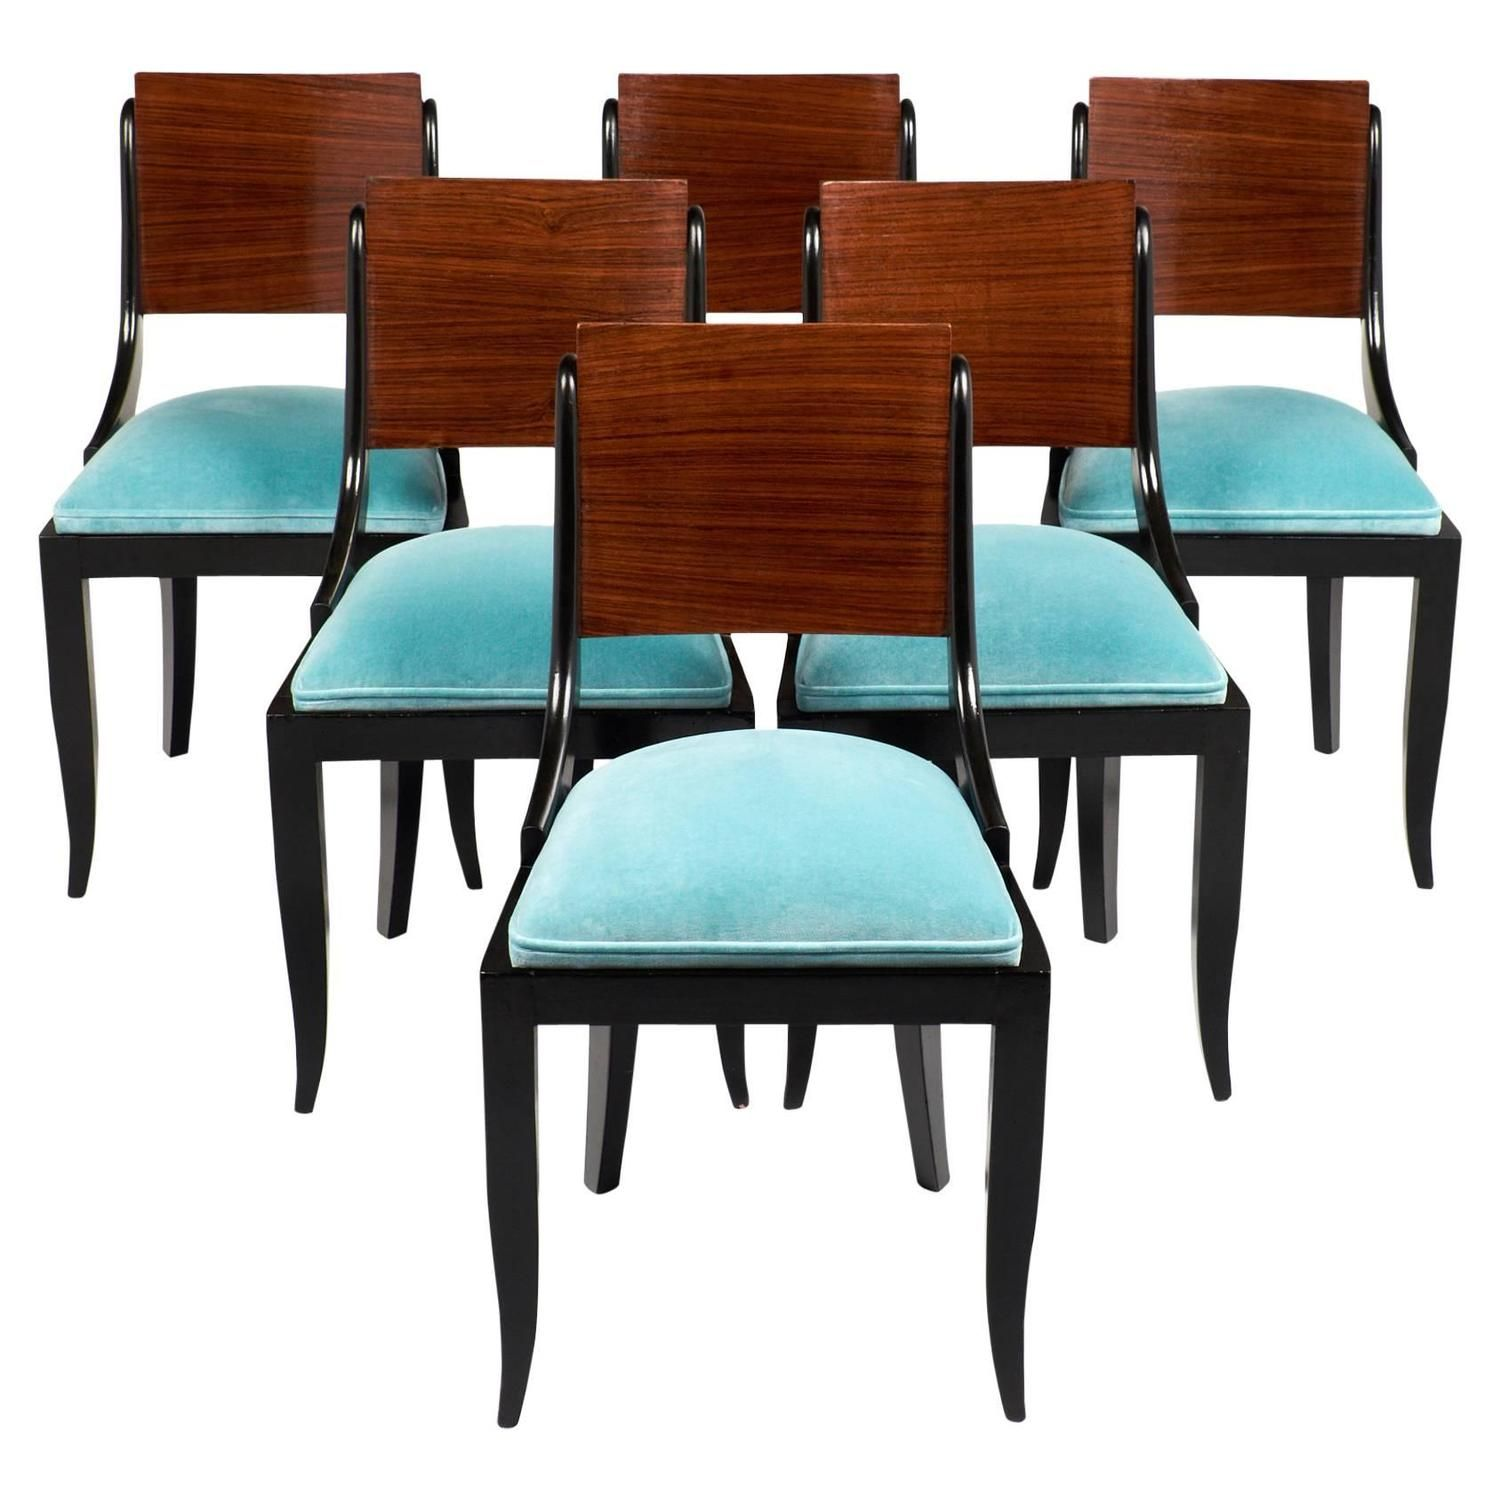 art deco period dining chairs set six - Set Of Six Dining Room Chairs